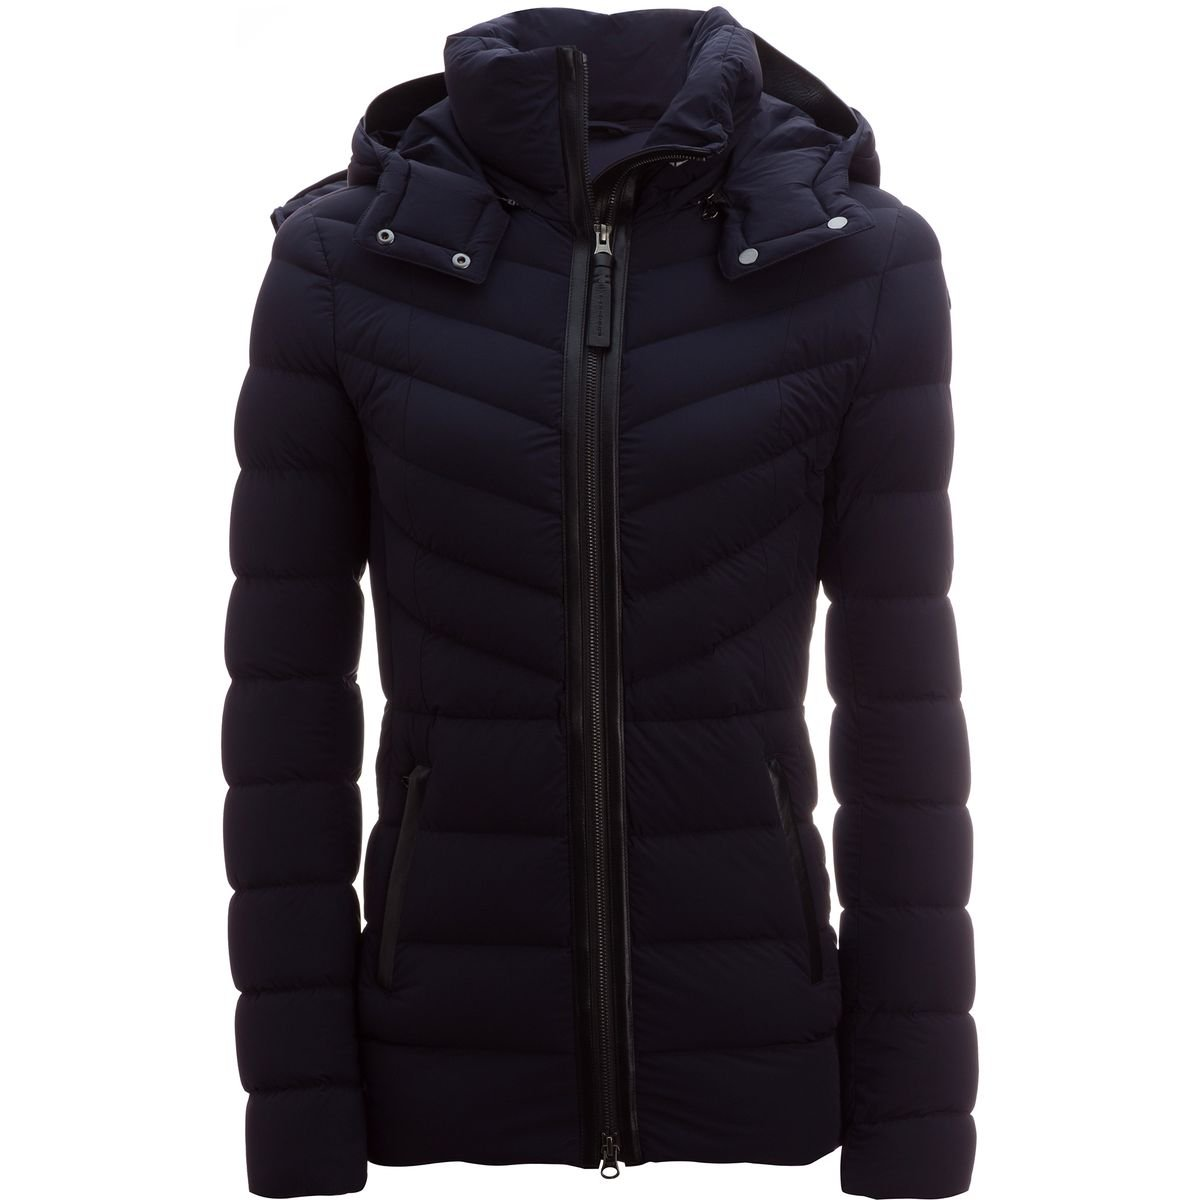 Mackage Patti Down Jacket - Women's Navy, XL